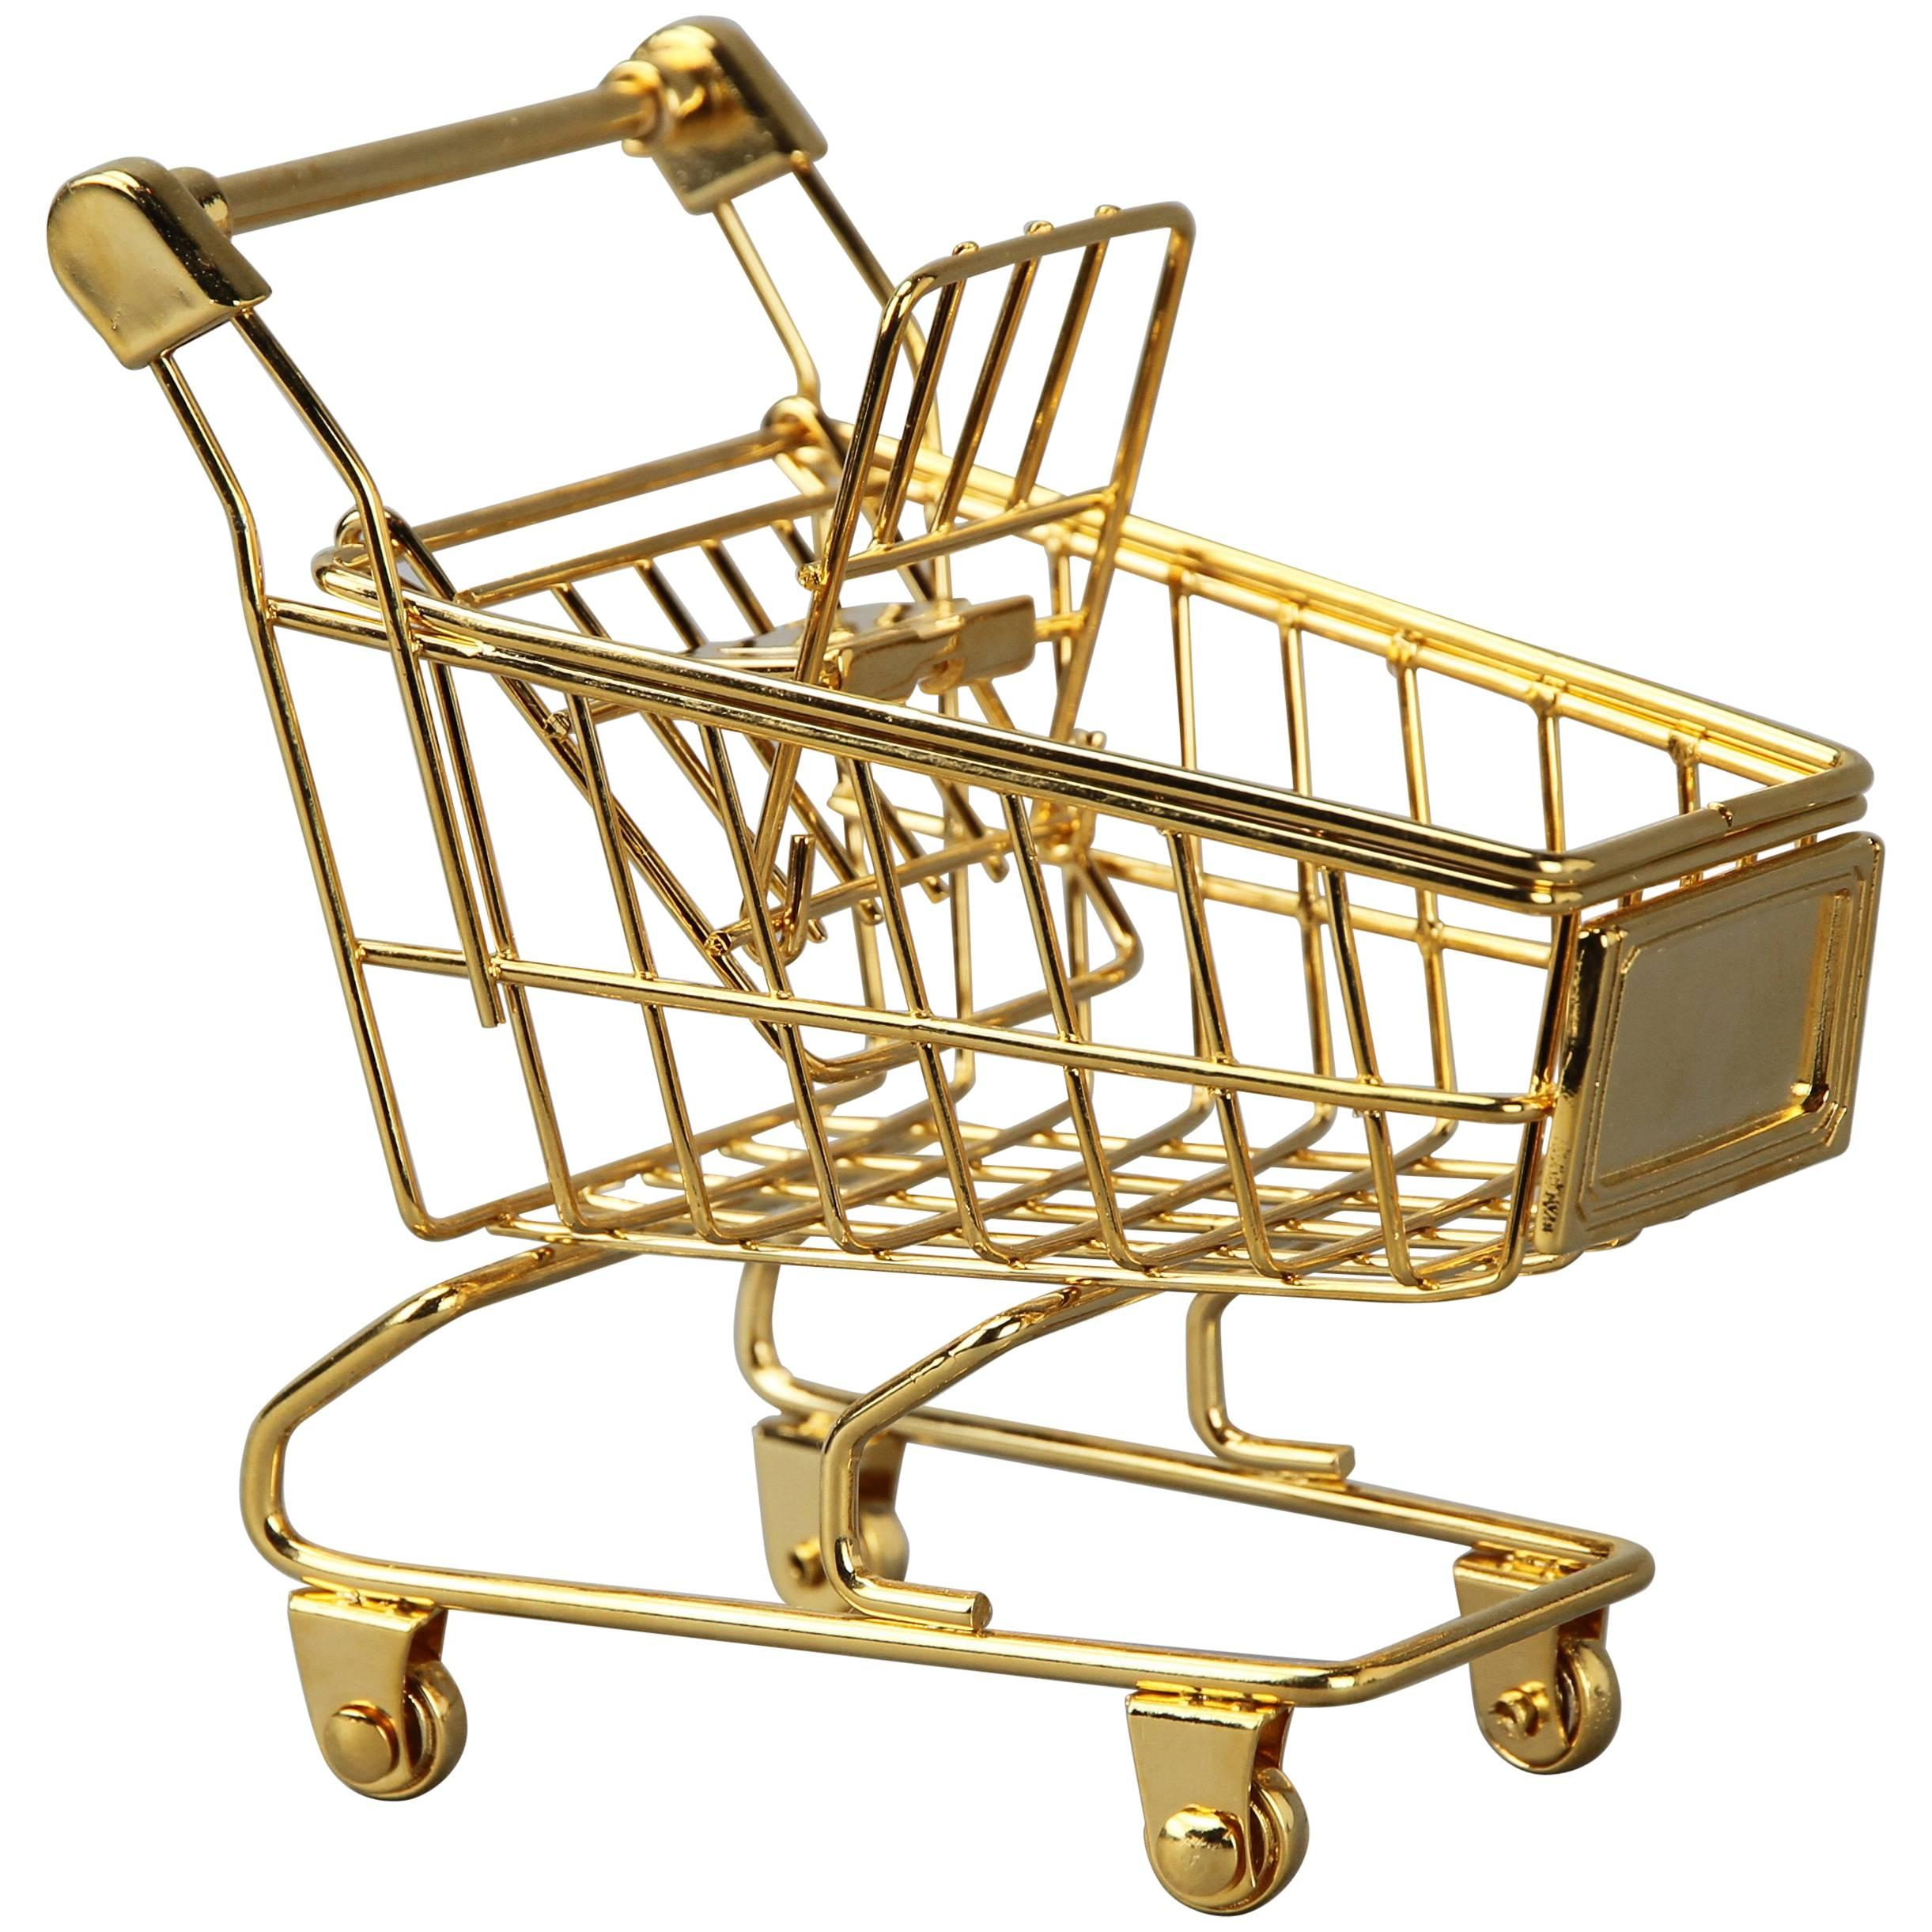 The 24K Gold Plated Cart by Christopher Kreiling